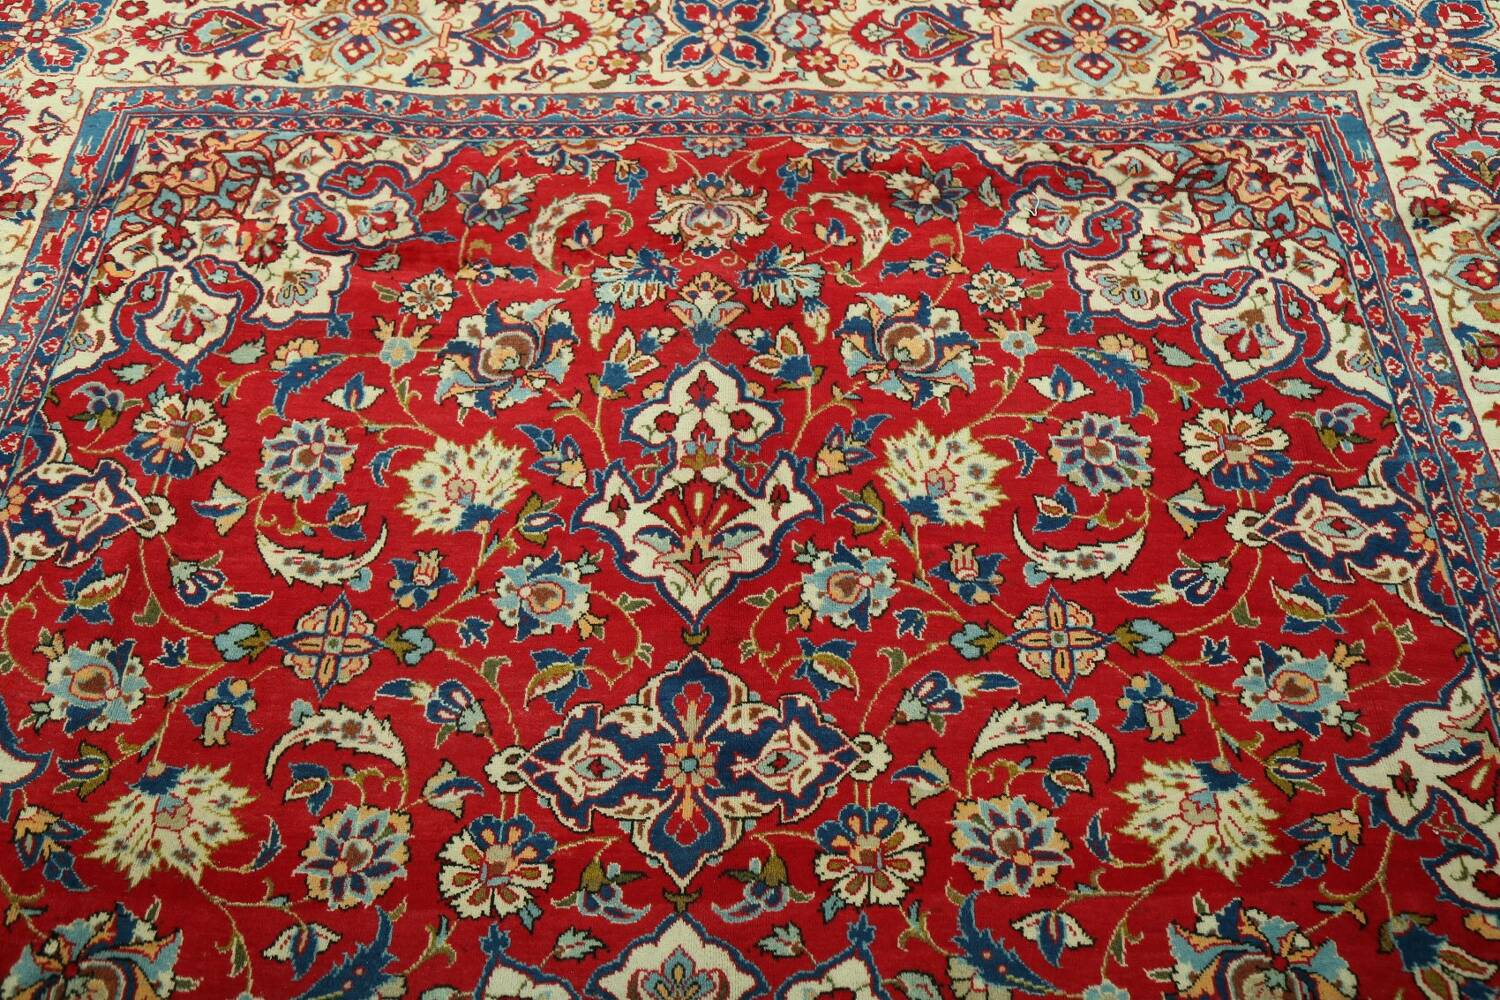 Vintage Floral Red Najafabad Persian Area Rug 8x12 image 14